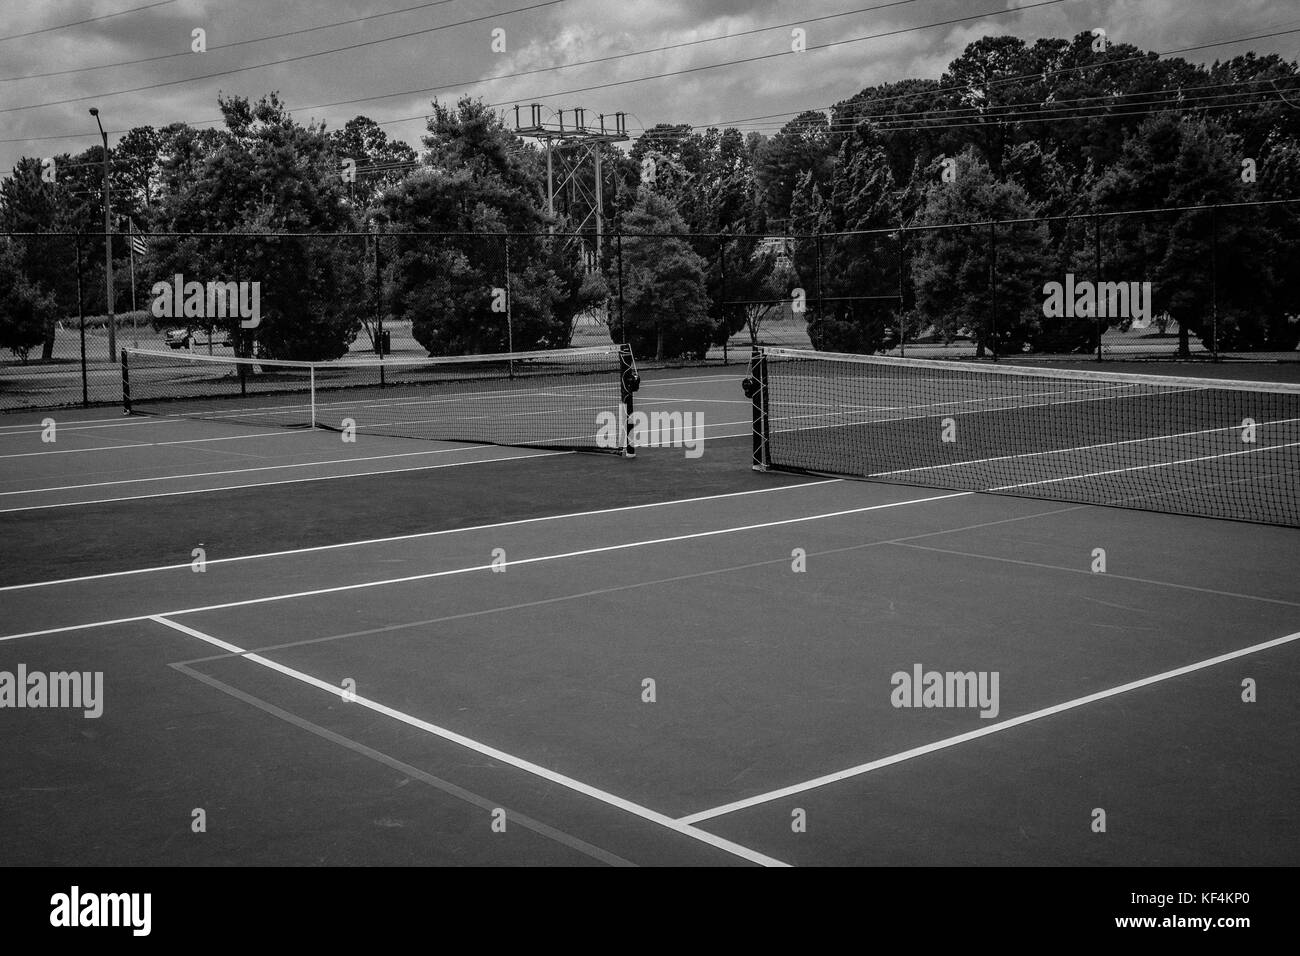 Tennis court before the match of a lifetime - Stock Image